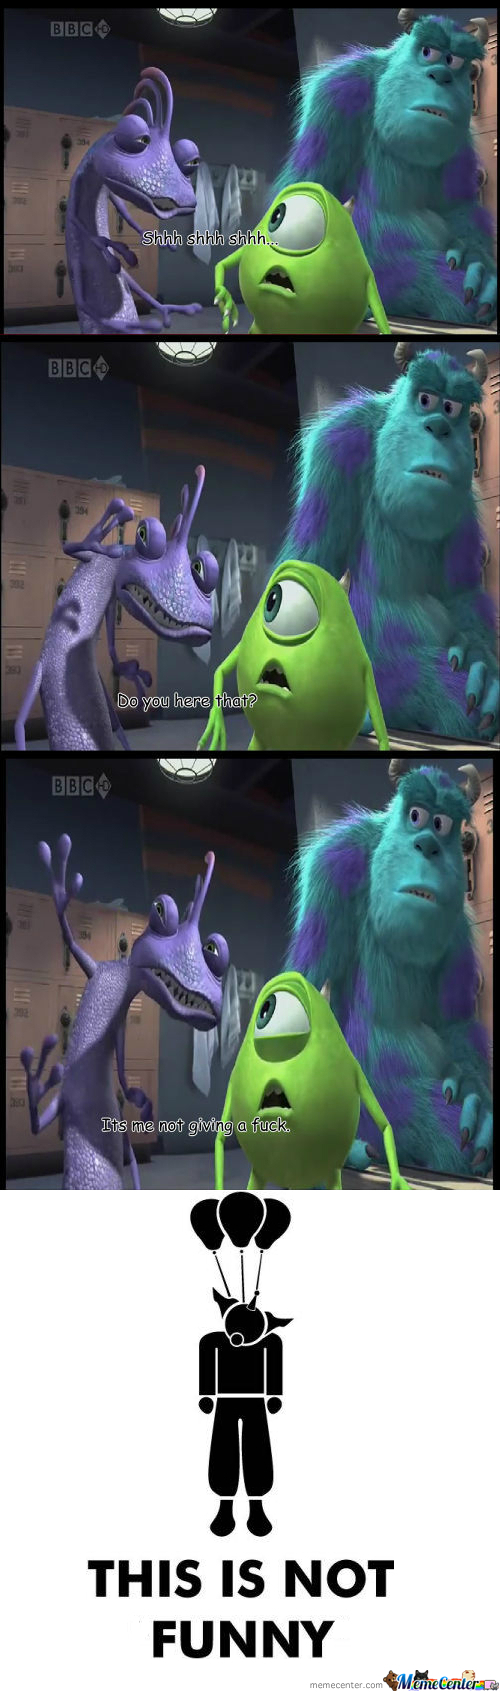 [RMX] Monsters Inc